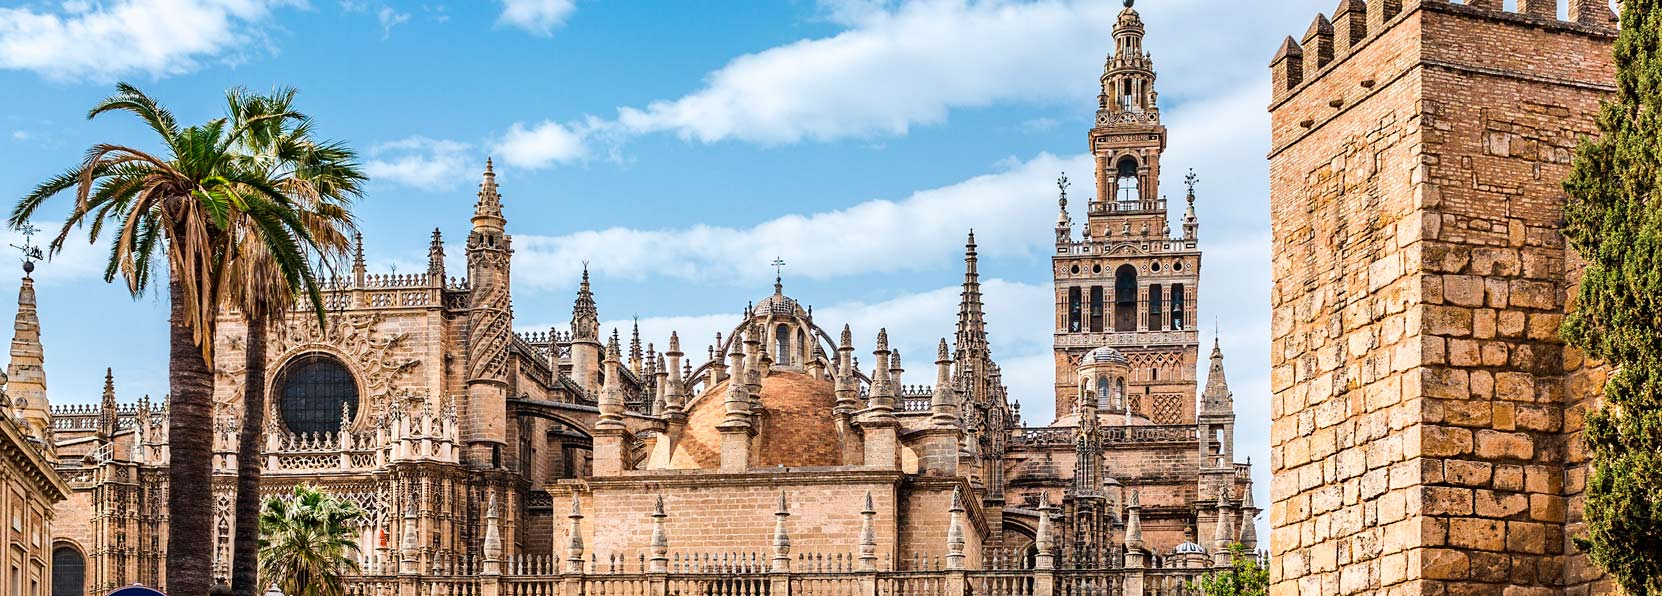 The Magnifiscent Cathedral of Seville